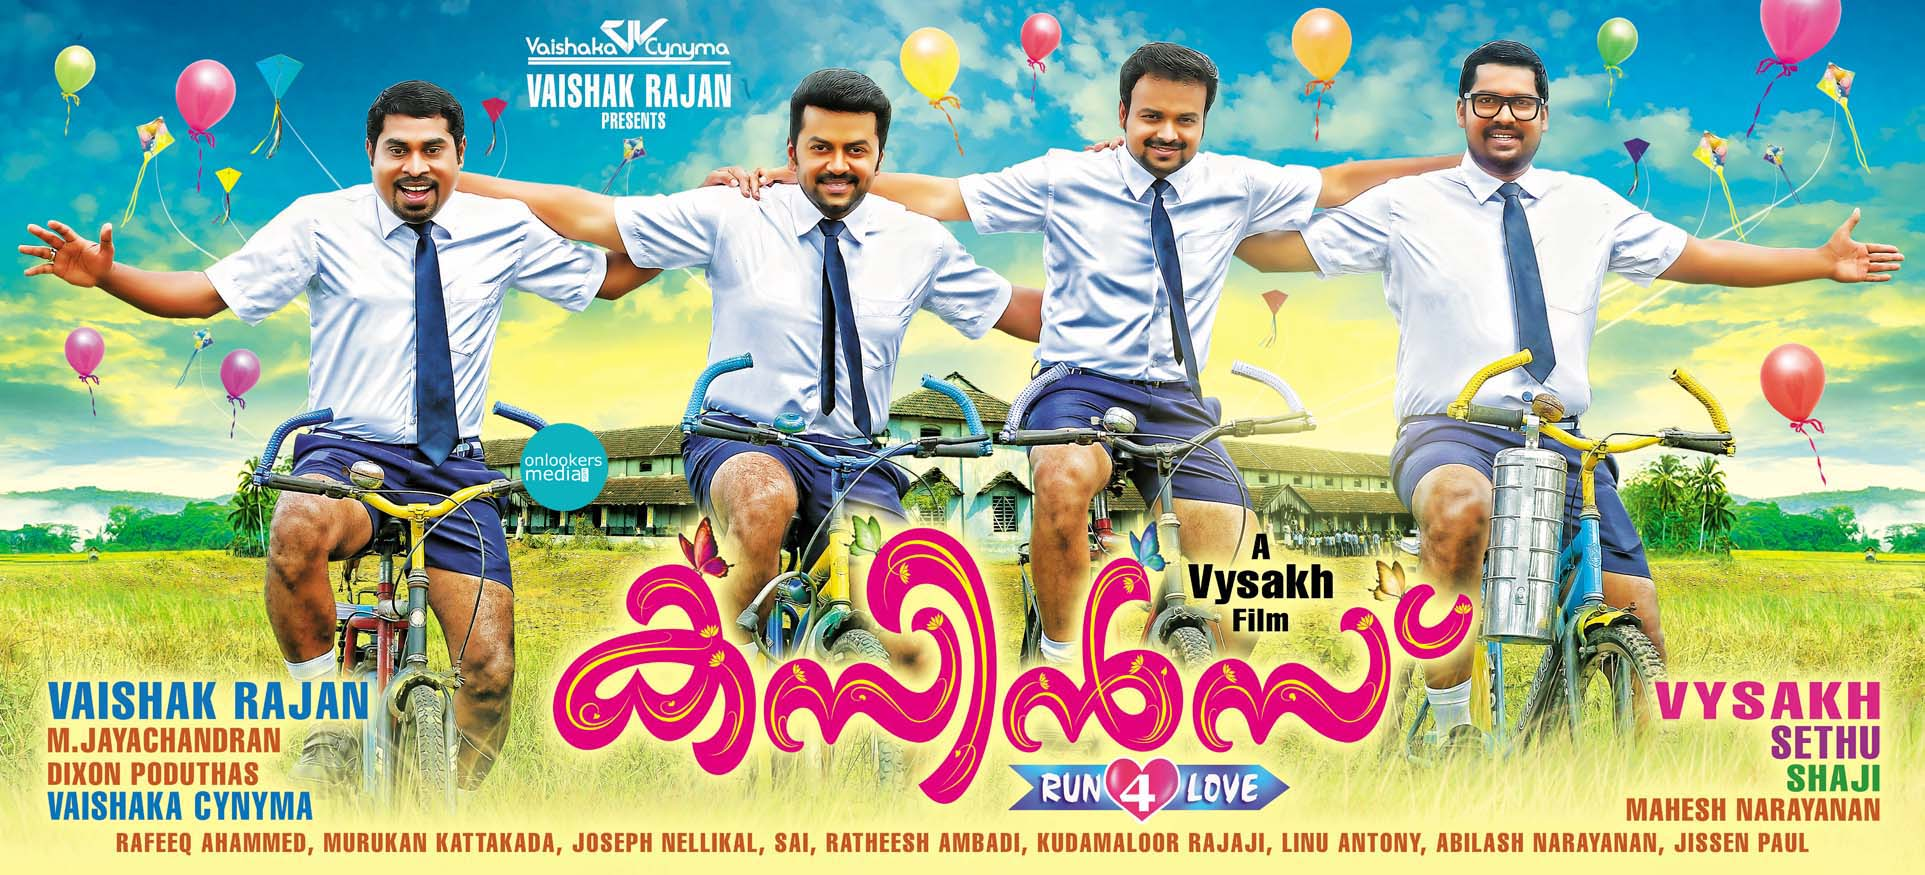 http://onlookersmedia.in/wp-content/uploads/2014/12/Cousins-Posters-Stills-Images-Review-Report-Collection-Kunchacko-Boban-Indrajith-Nisha-Agarwal-Vedhika-Miya-Onlookers-Media-11.jpg